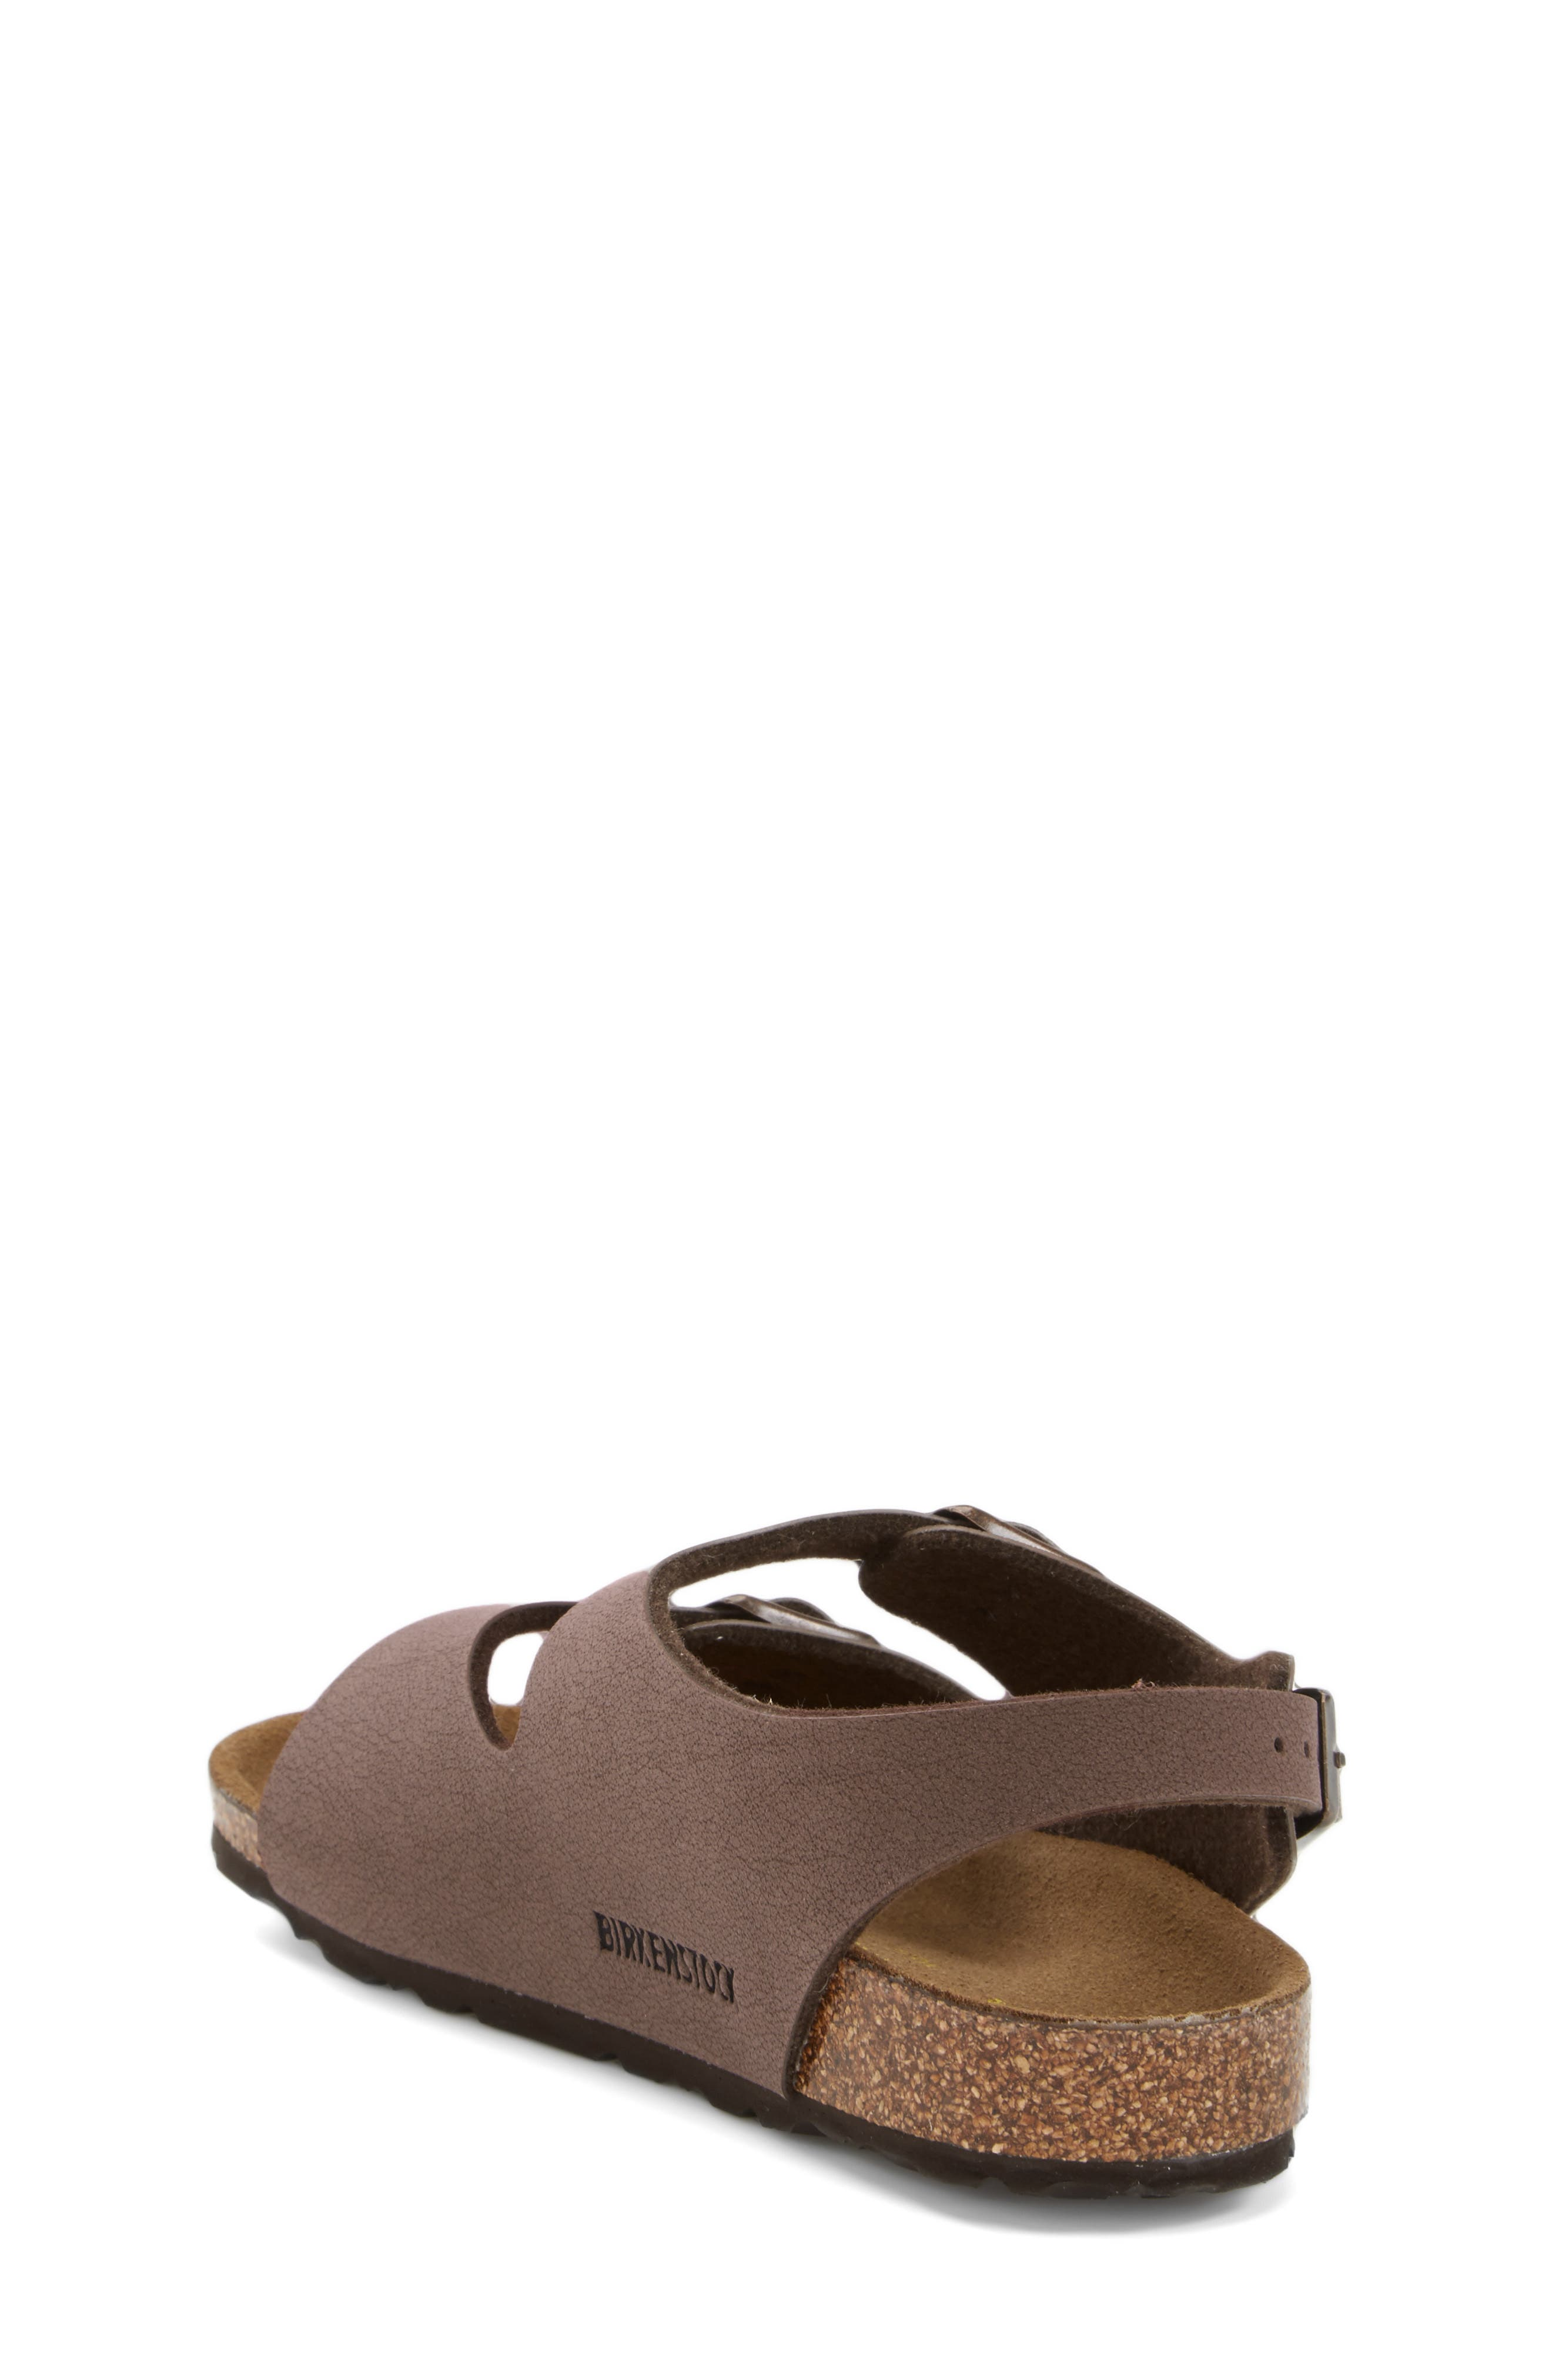 'Roma' Sandal,                             Alternate thumbnail 2, color,                             MOCHA